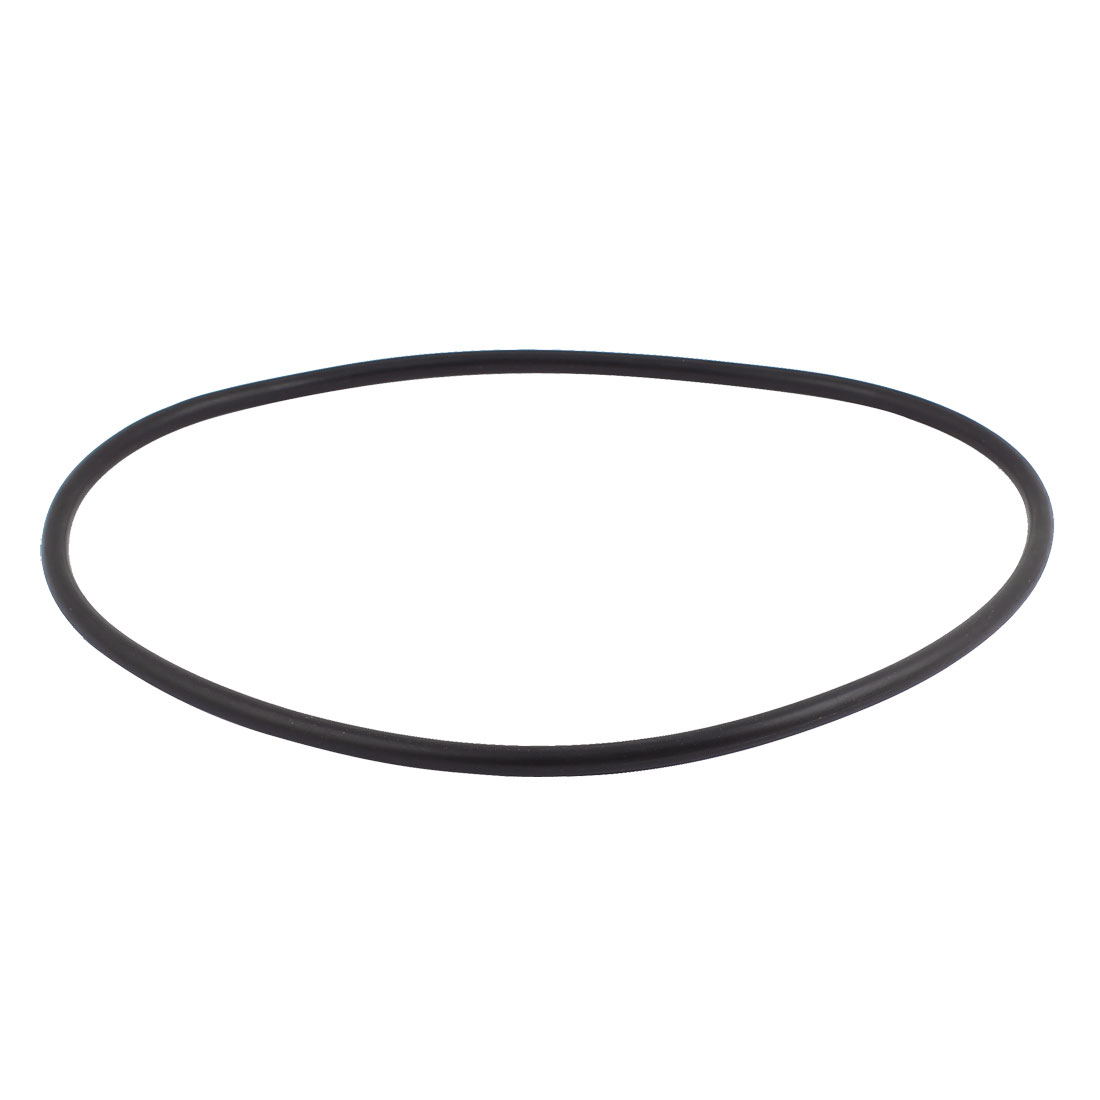 Black Universal O-Ring 285mm x 8.6mm BUNA-N Material Oil Seal Washers Grommets